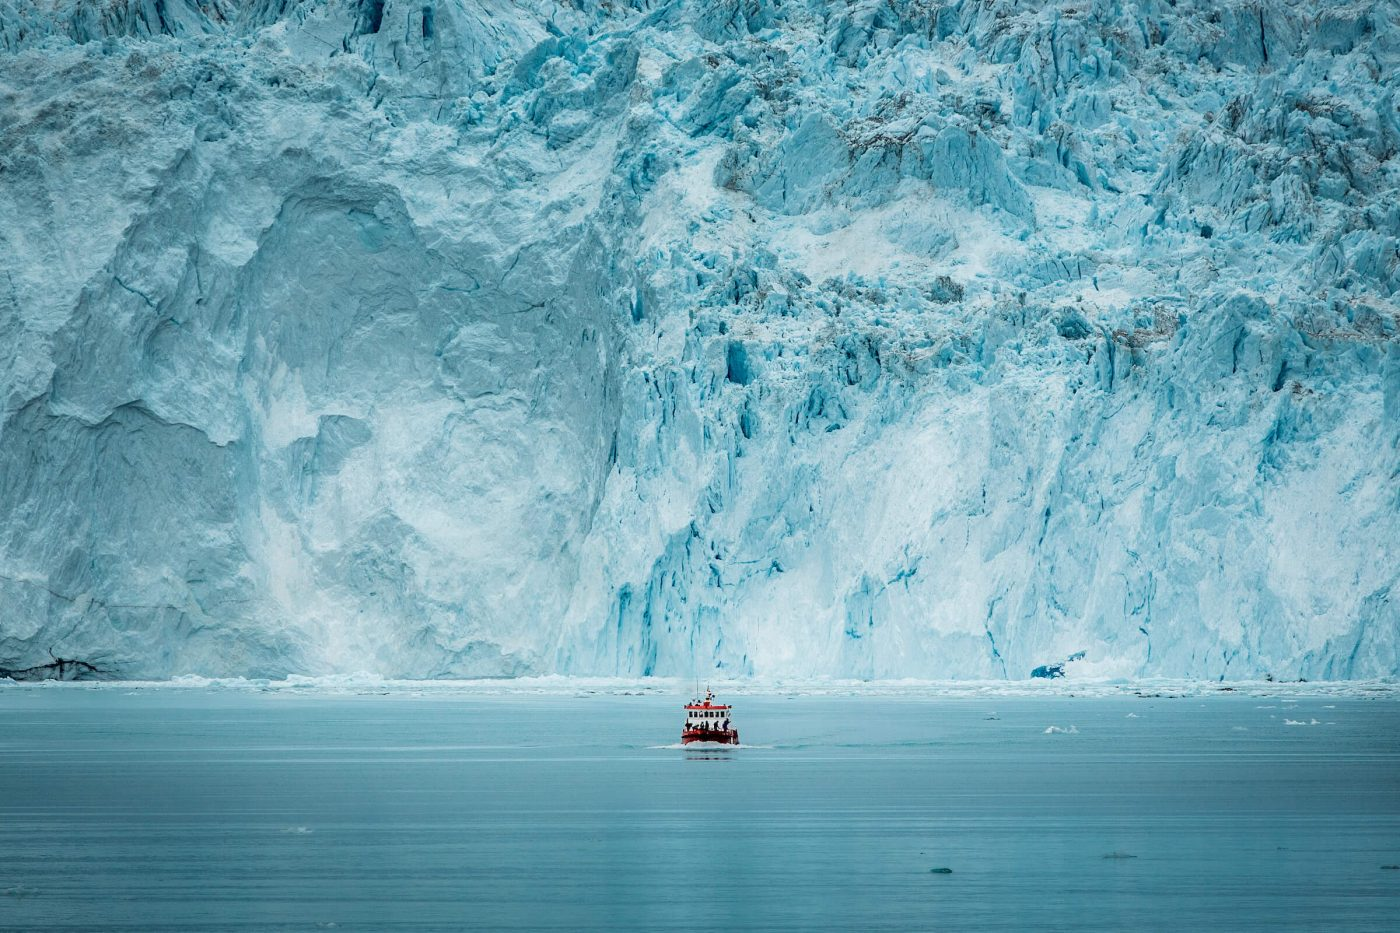 A small passenger boat in front of the huge glacier wall at the Eqi glacier in Greenland. Photo by Mads Pihl